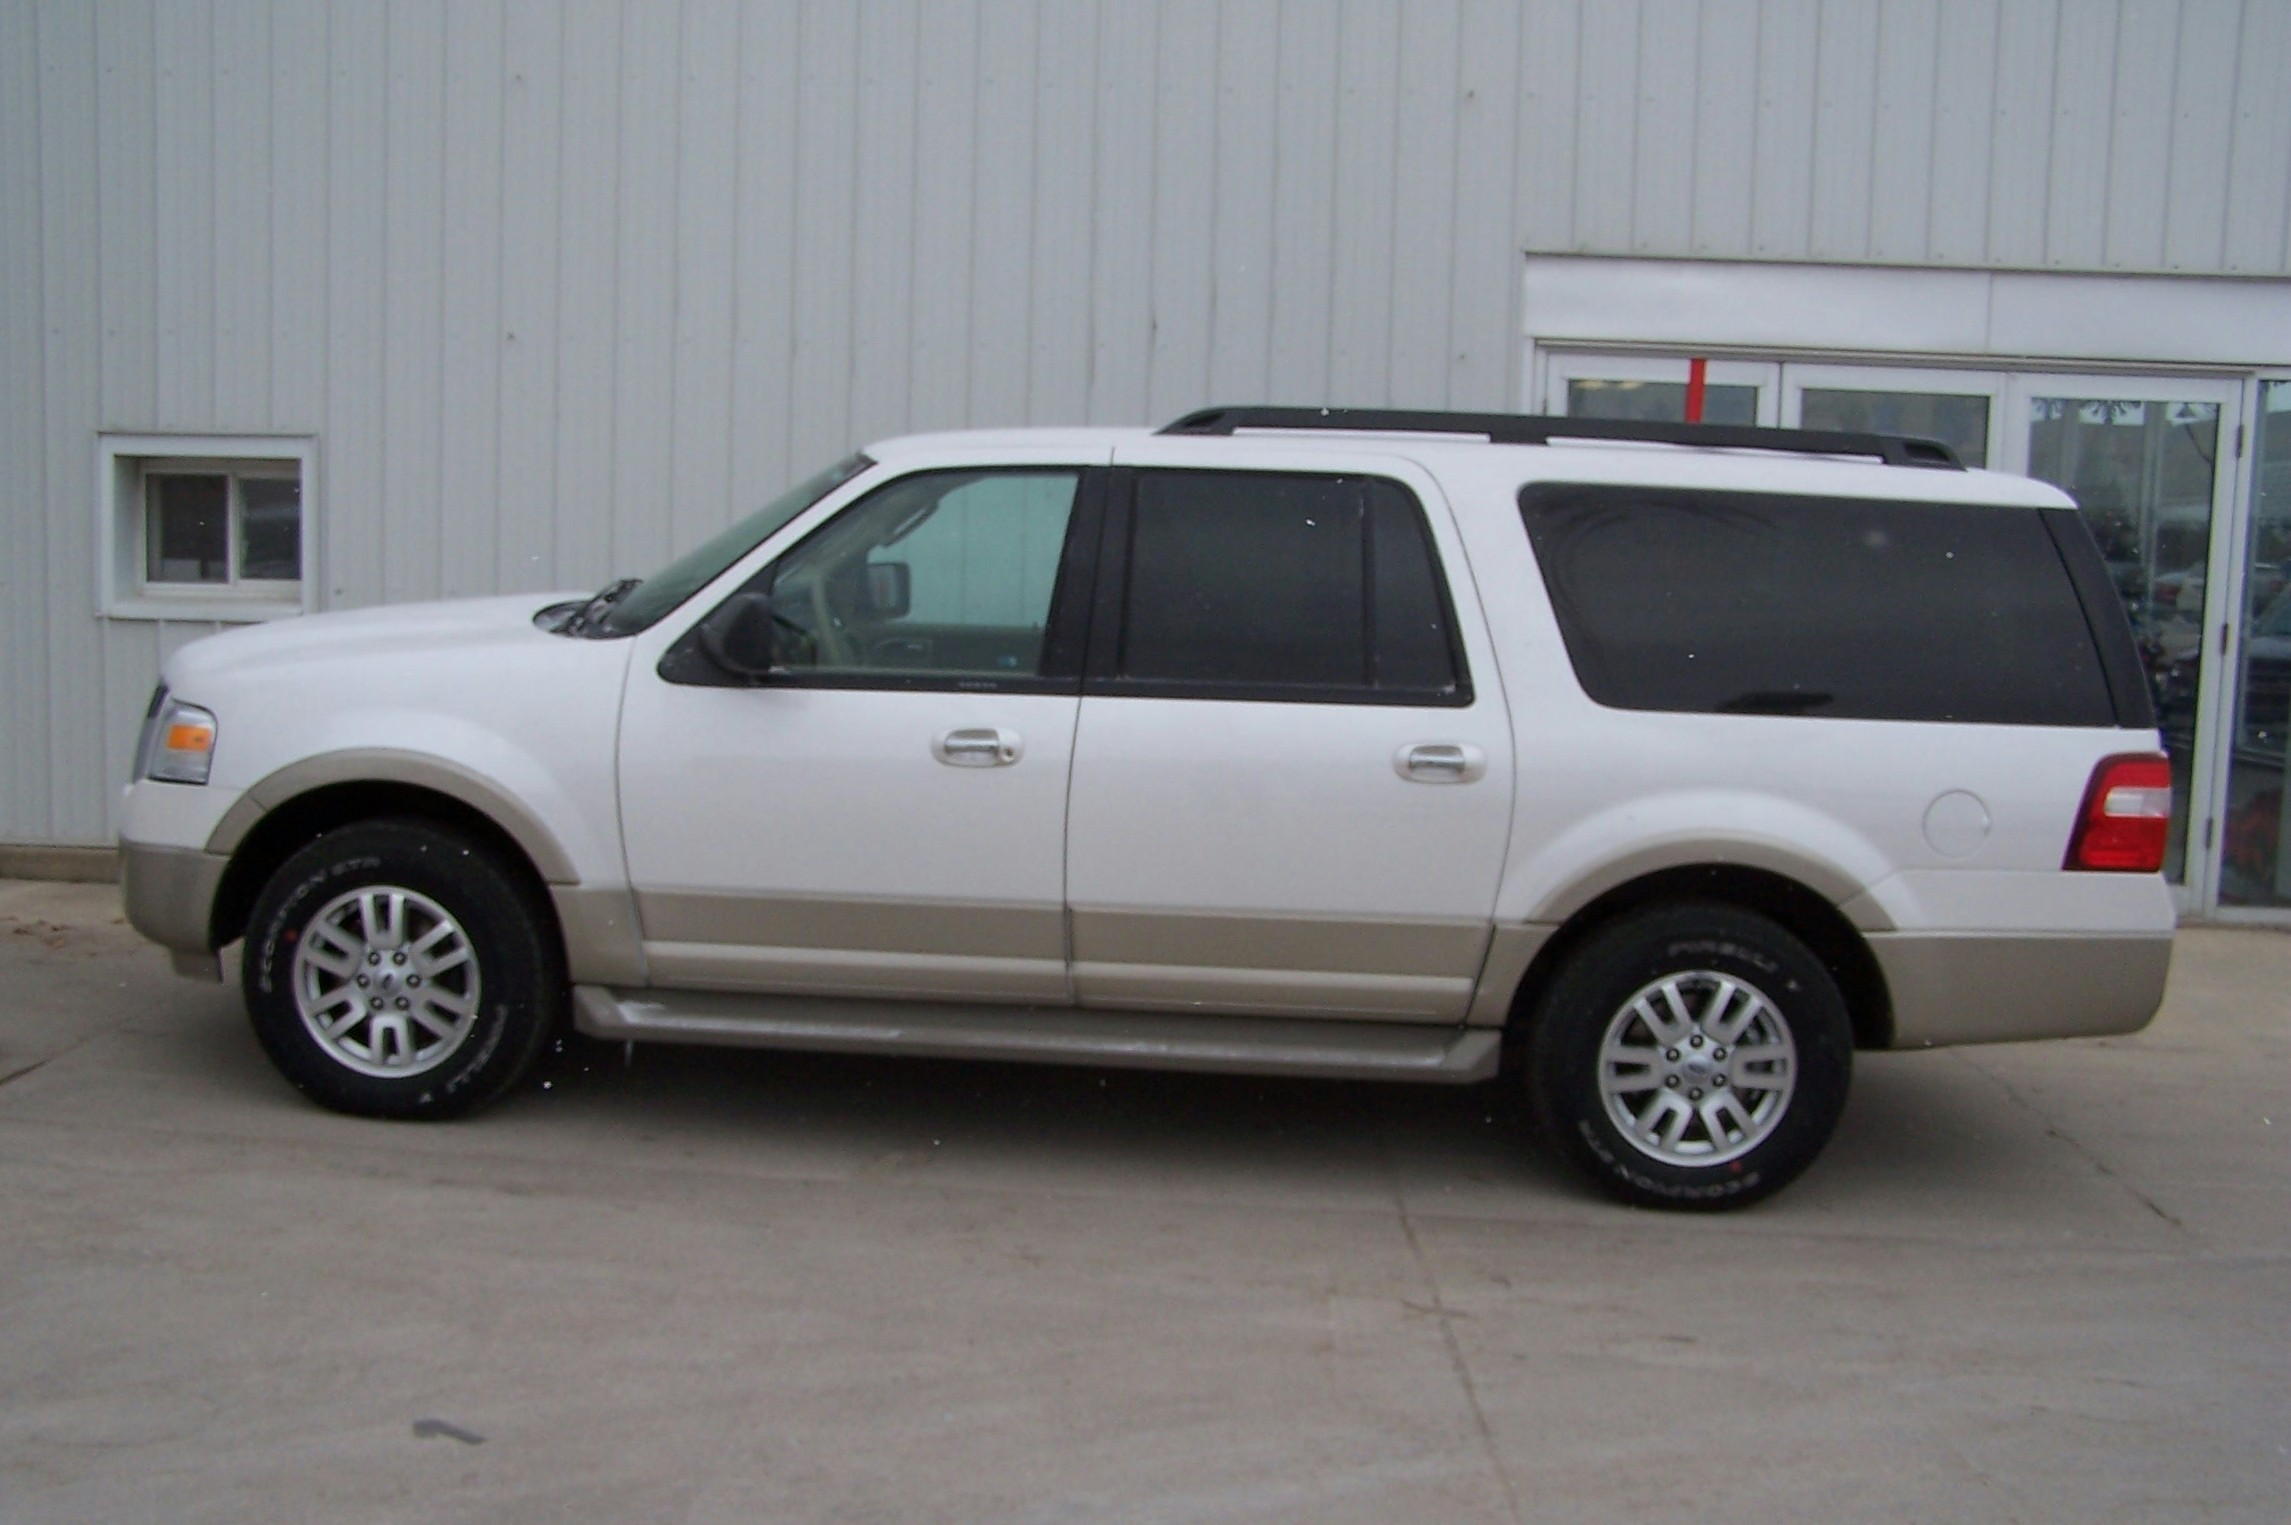 2009 Ford Expedition El Image 7